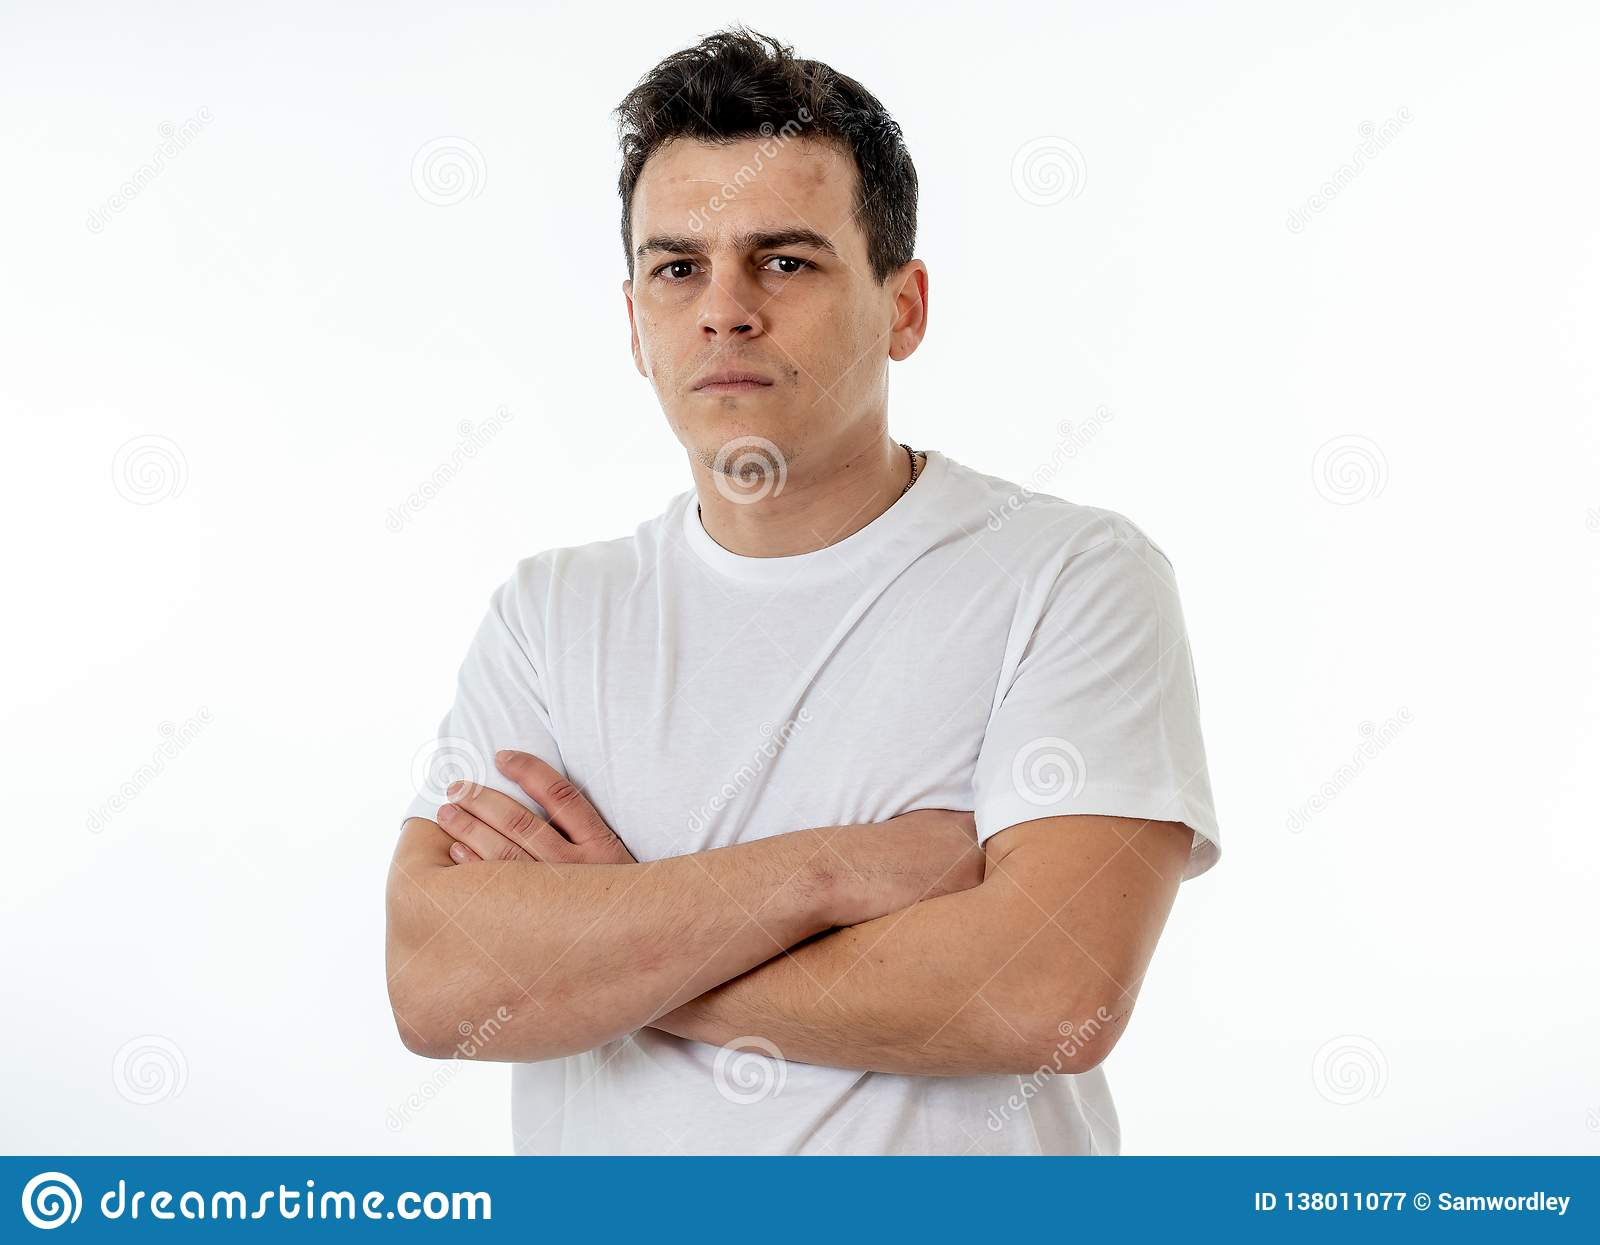 Human expressions and emotions. Young attractive man with an angry face, looking furious and crazy